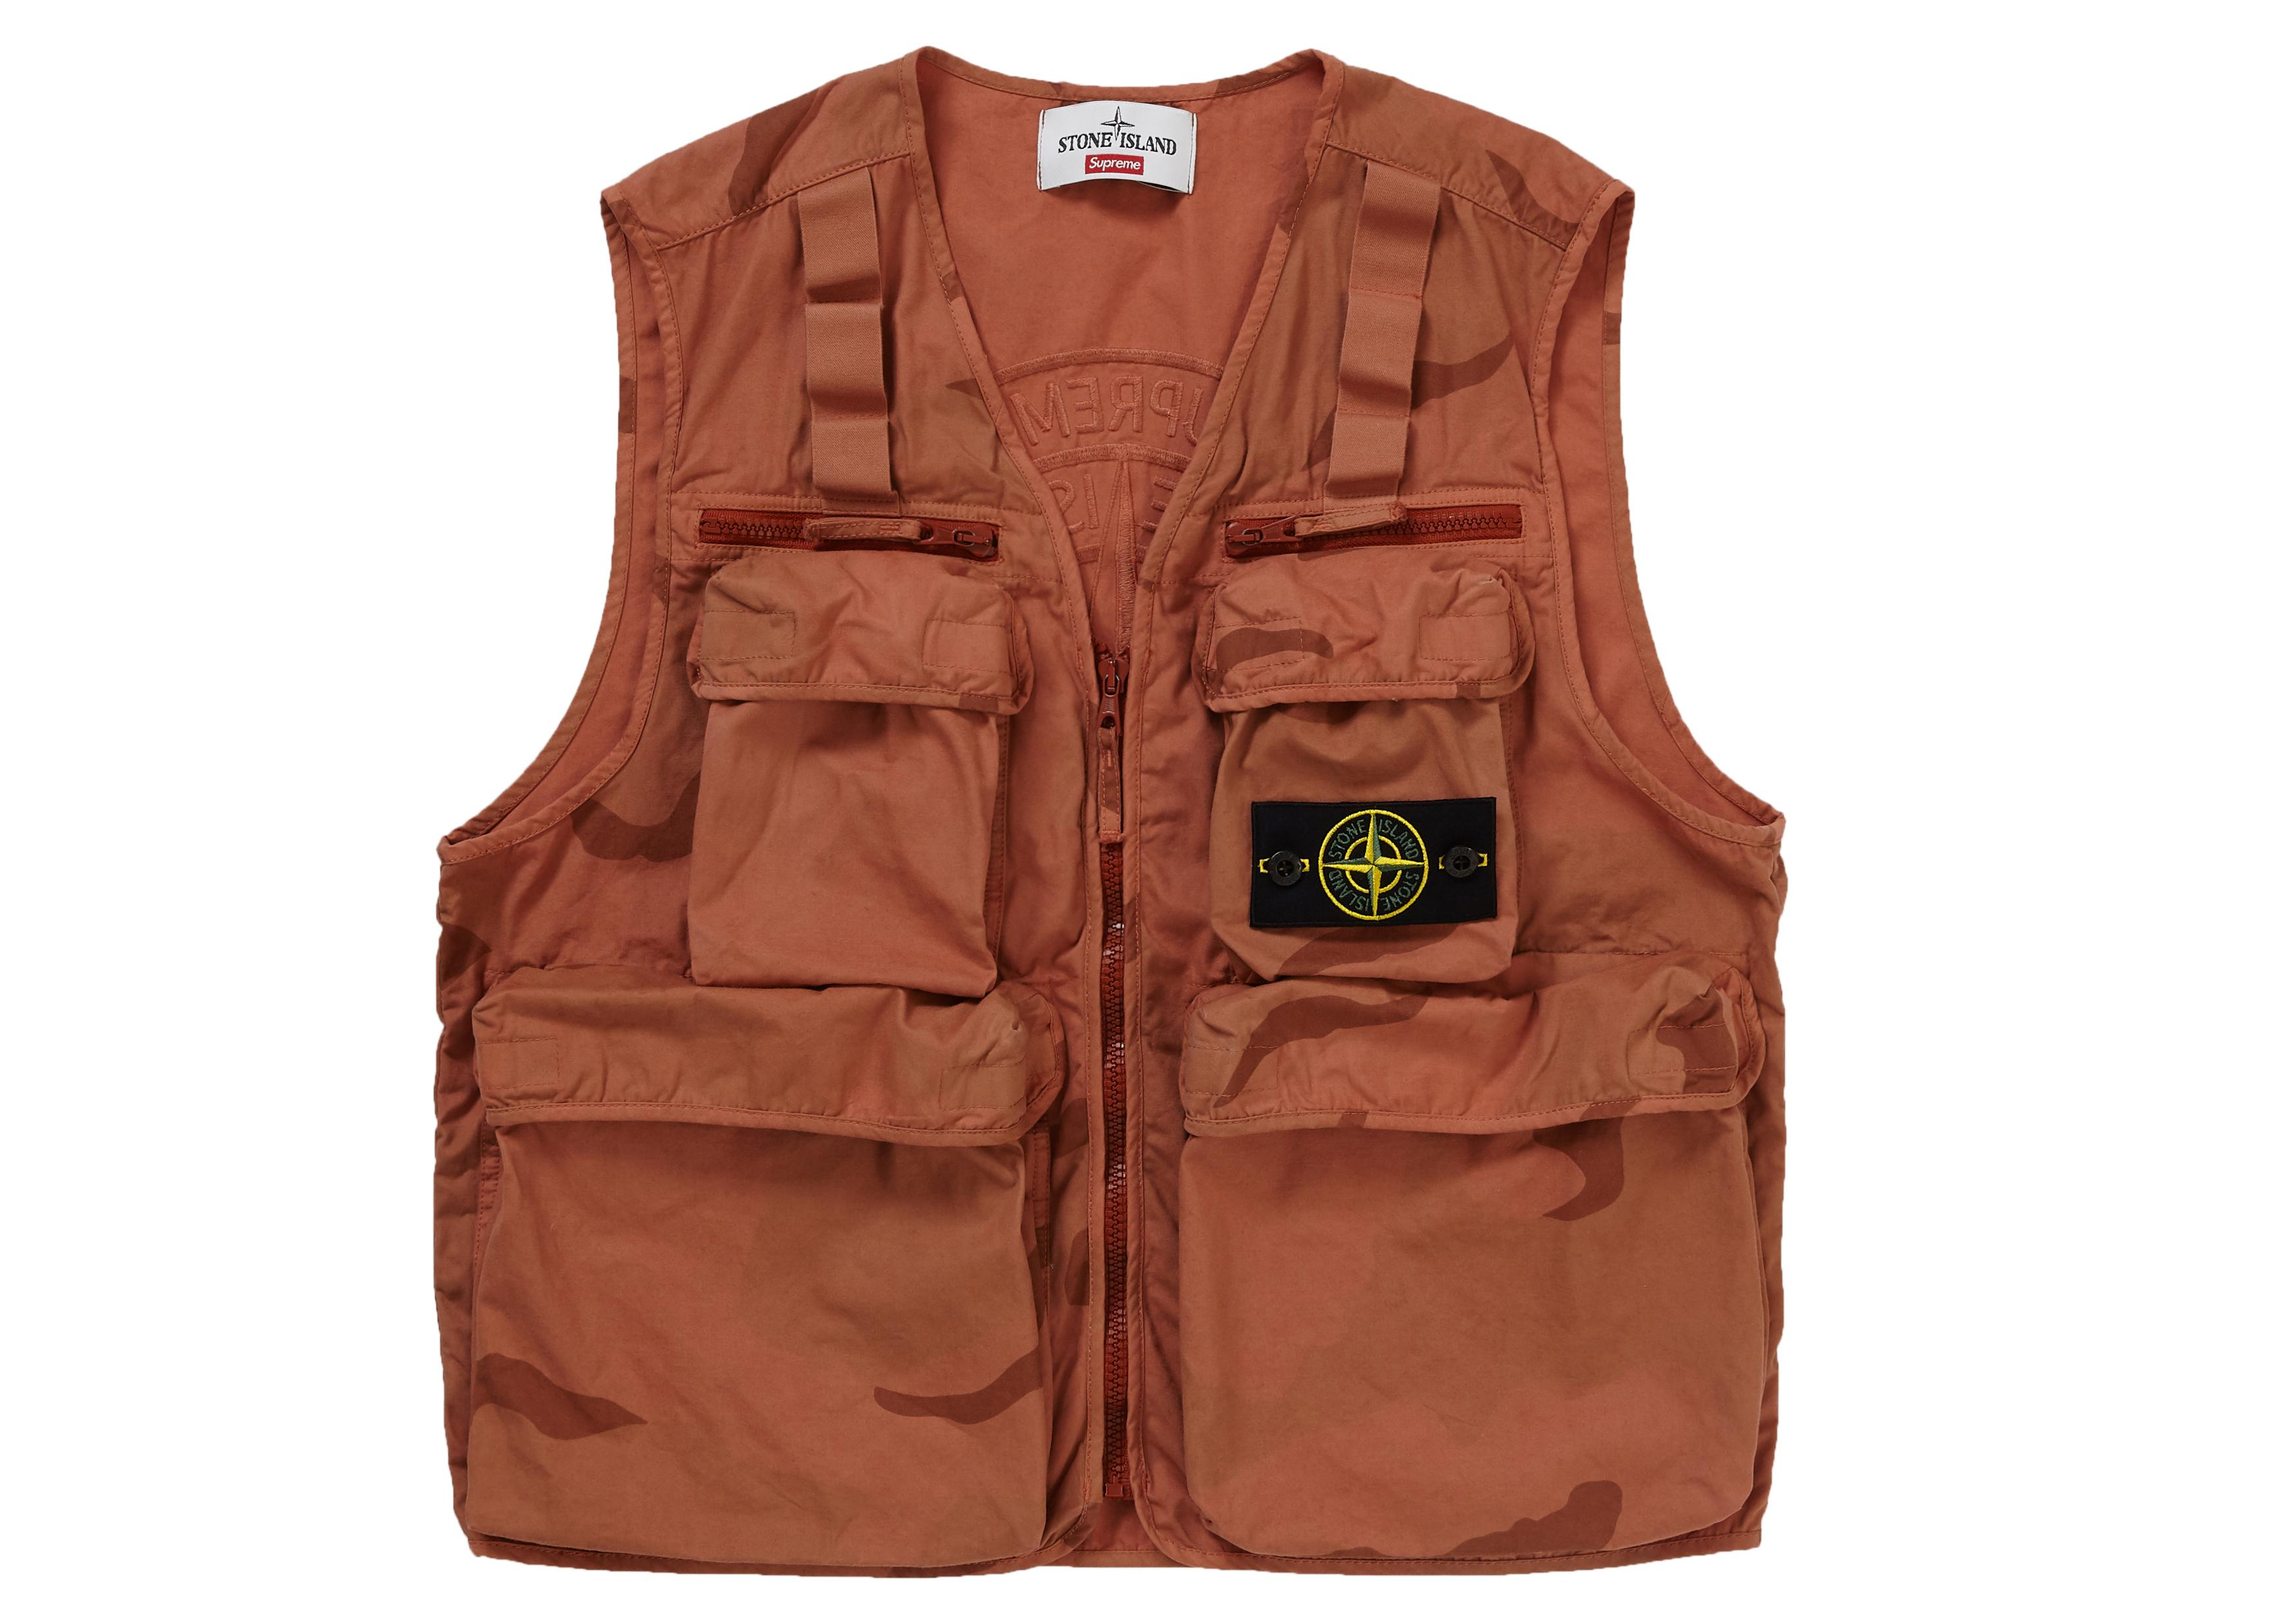 973bd9a6 Lyst - Supreme Stone Island Camo Cargo Vest Coral Camo in Brown for Men